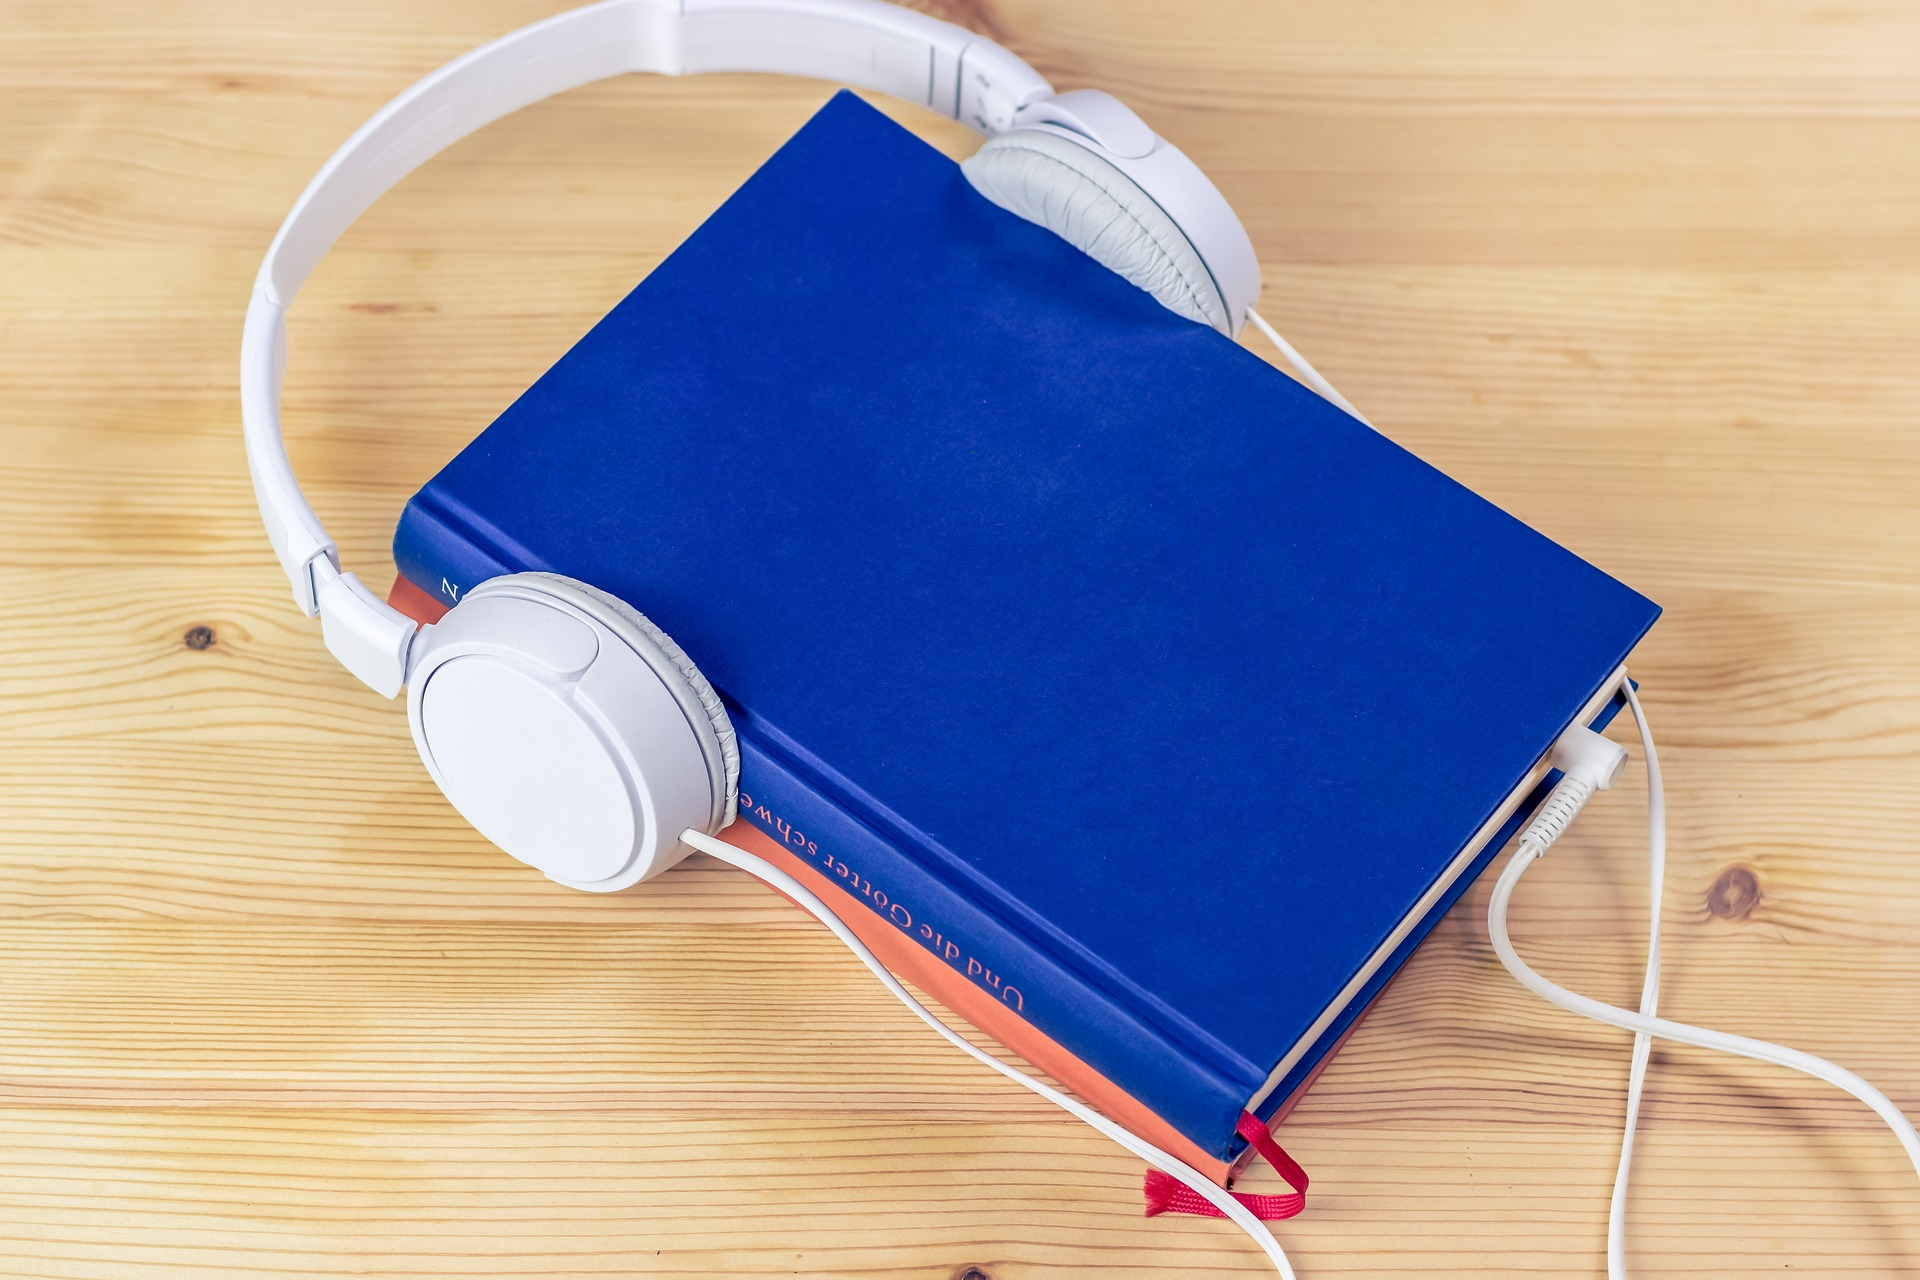 A book with headphones on it